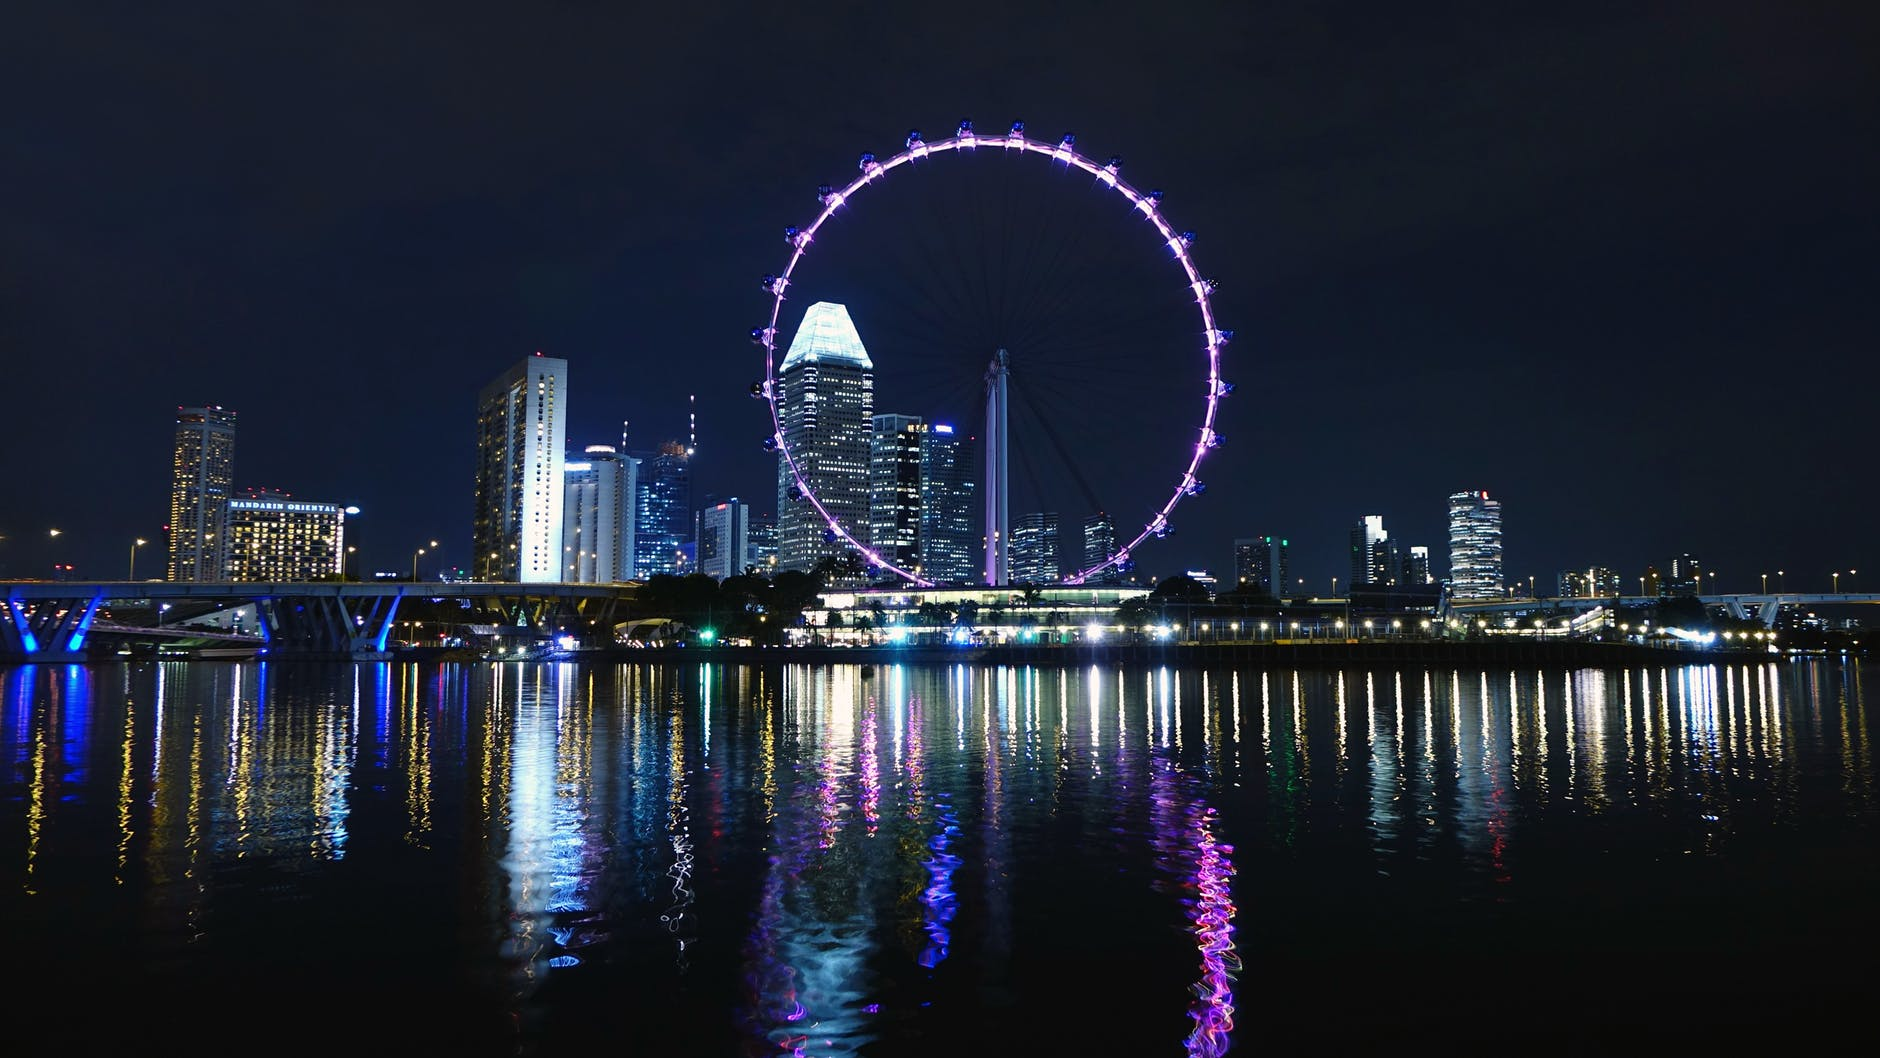 singapore-ferris-wheel-big-wheel-river-52495